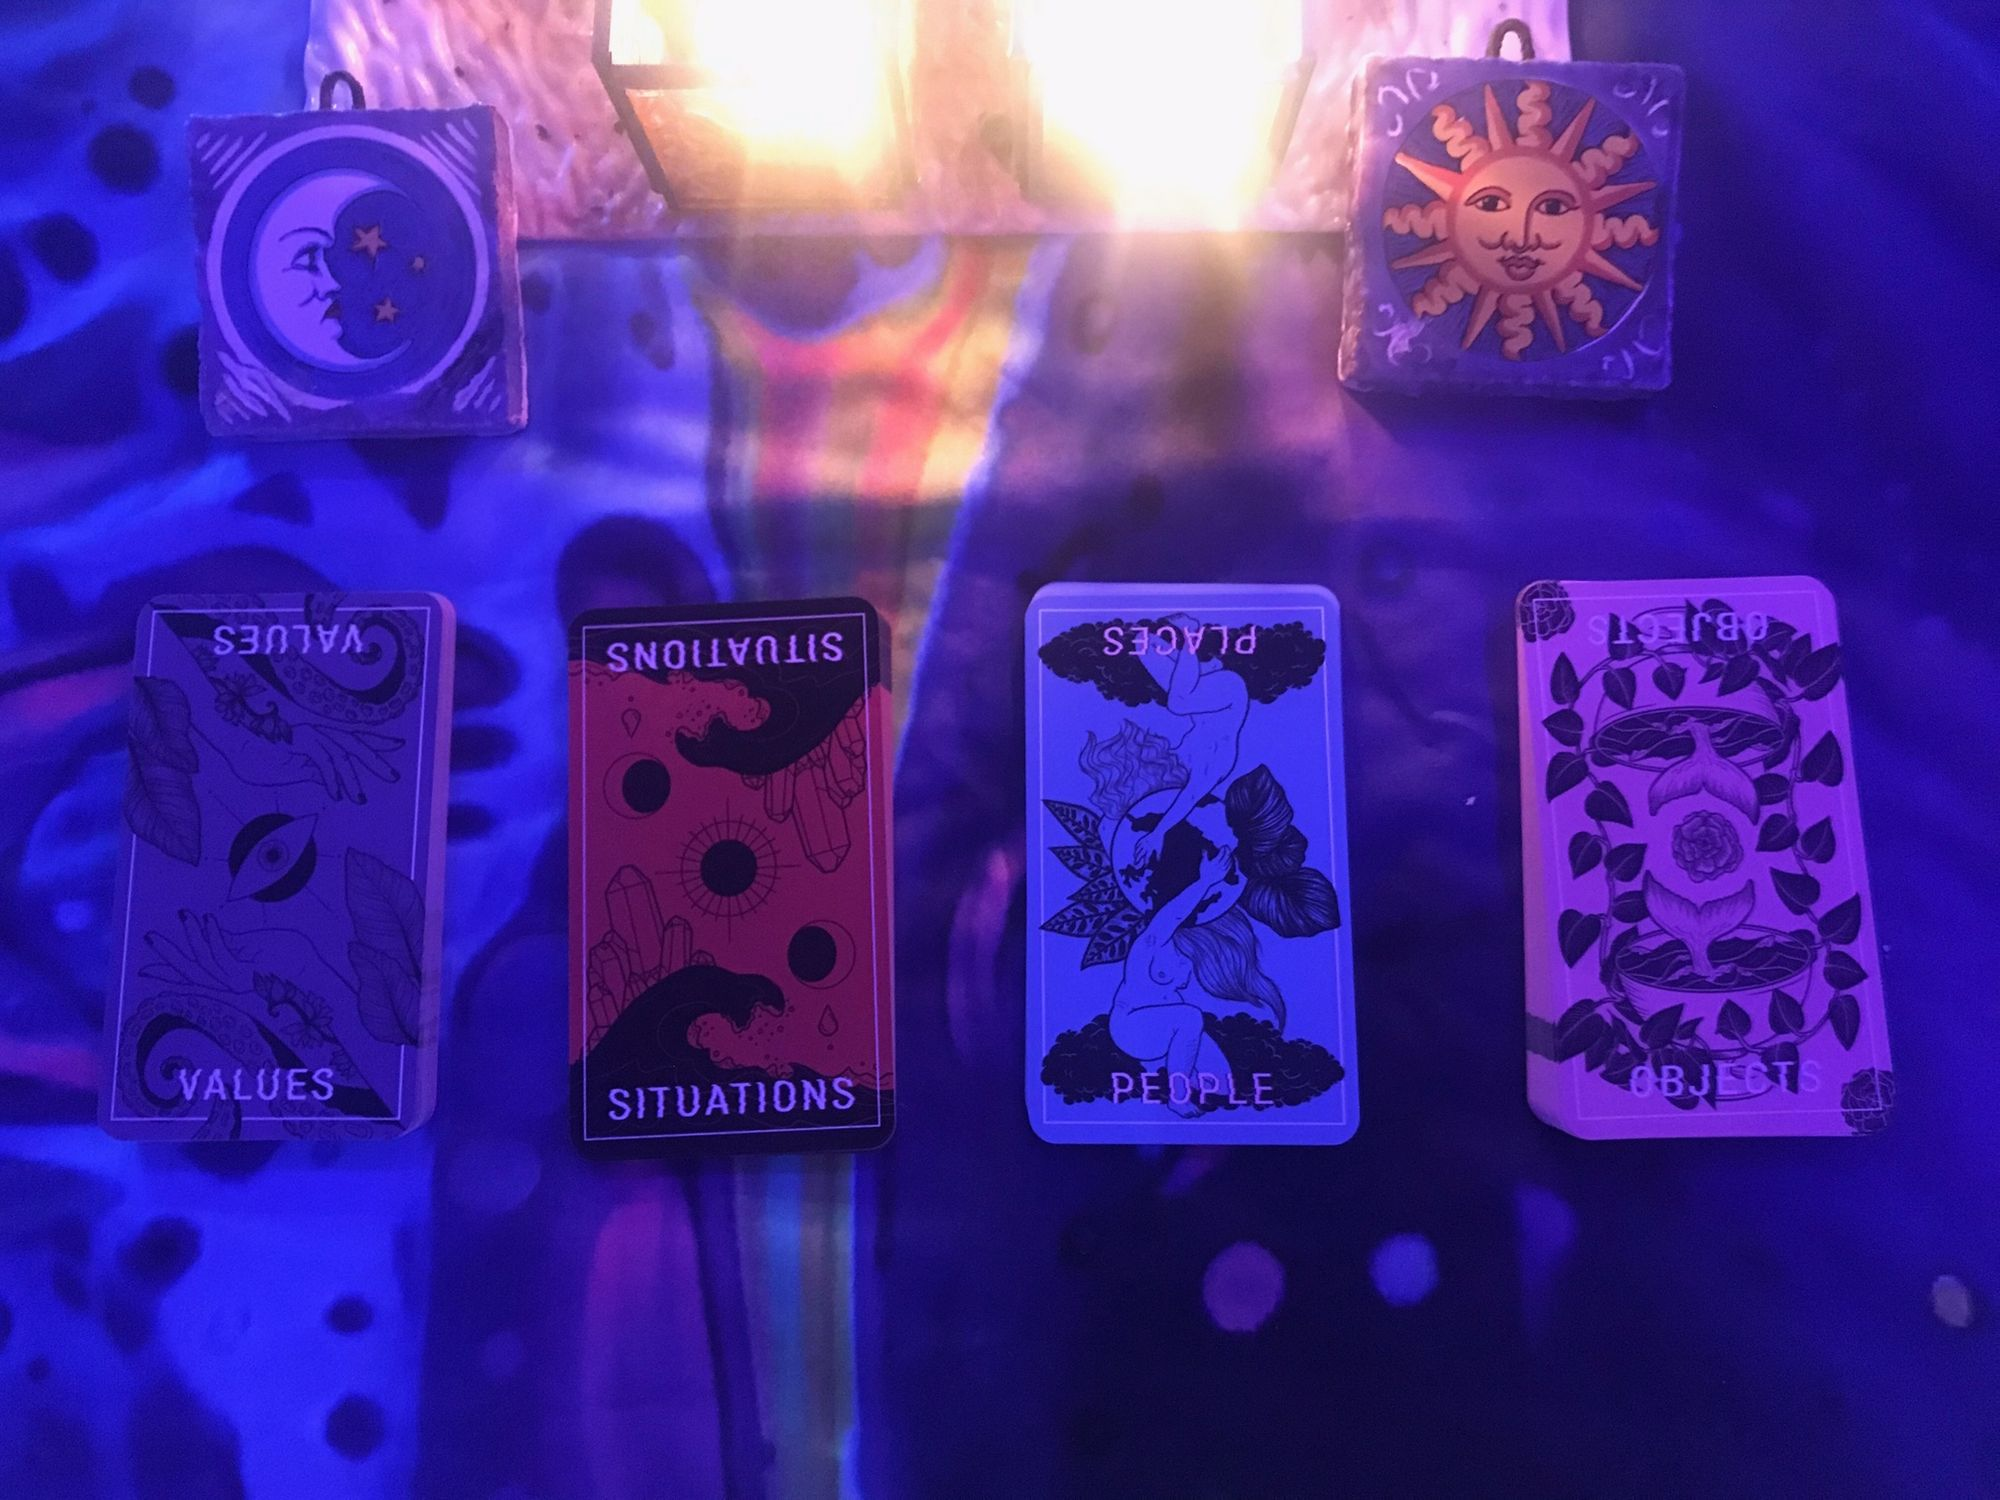 Four cards, with the words Values, Situations, Places, and Objects.  Above them, two small ceramic tiles with a moon on the left and a sun on the right, and candlelight between them.